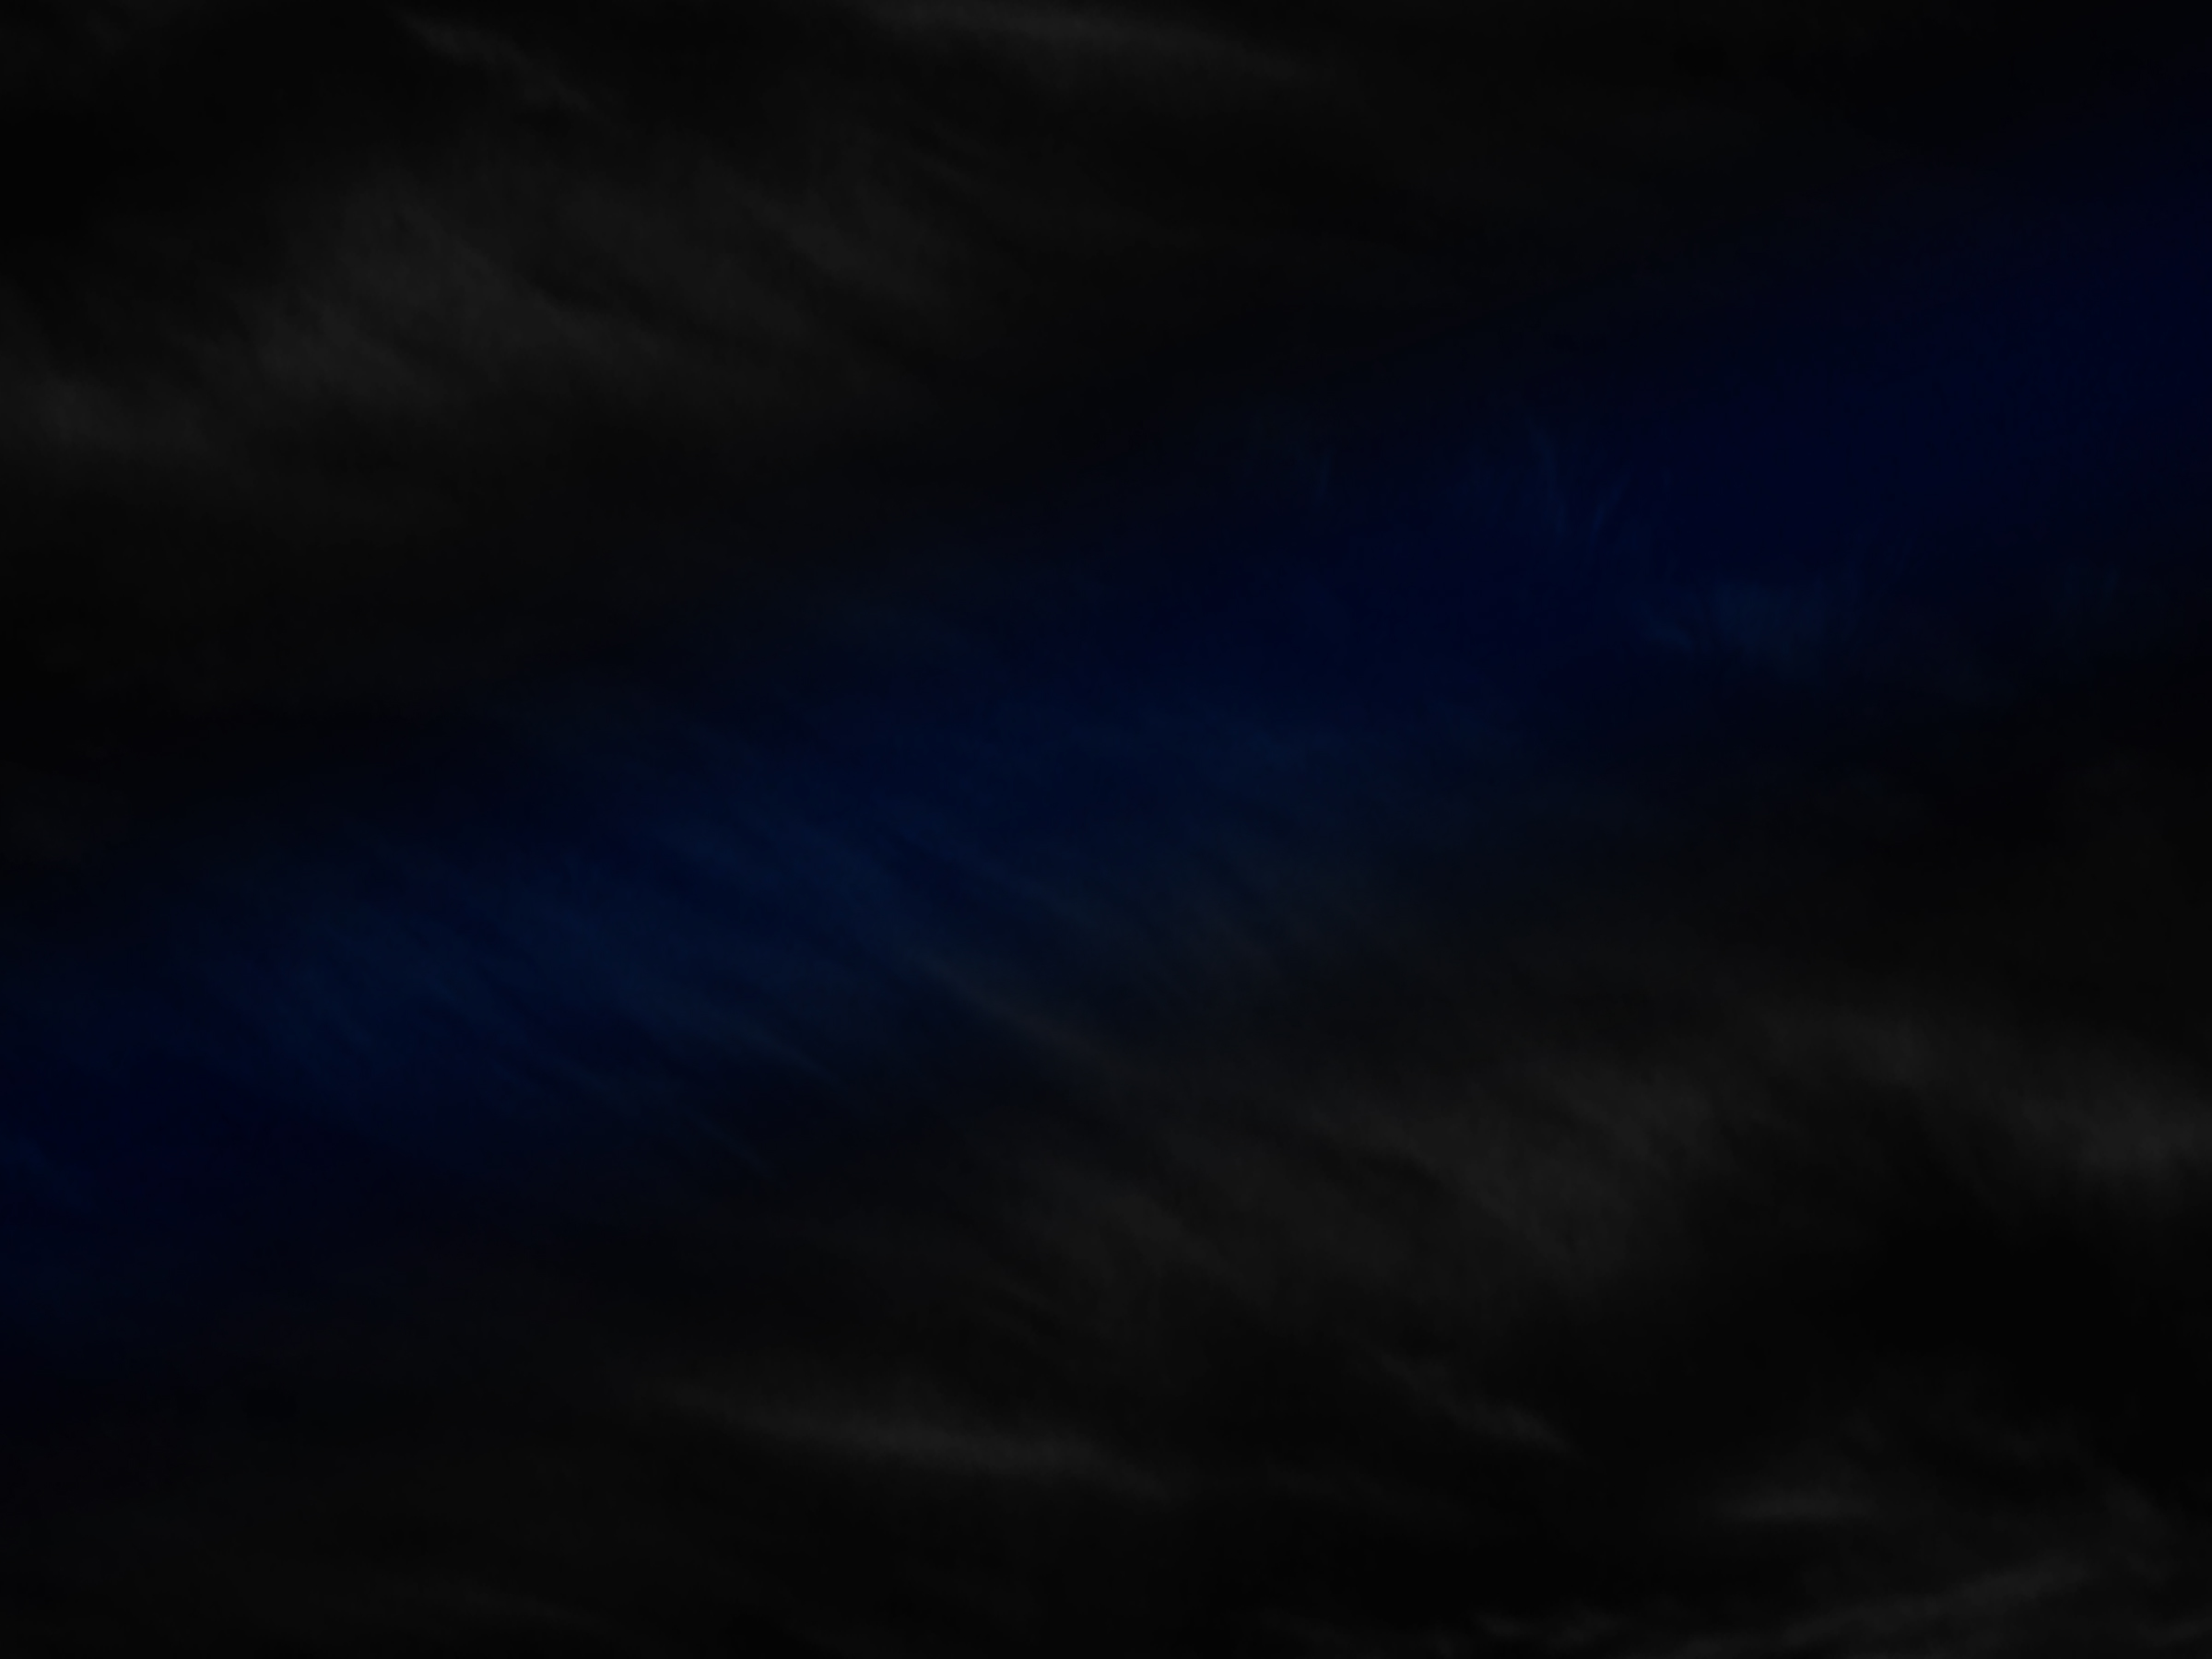 Moon sky cloudy black with blue stripe